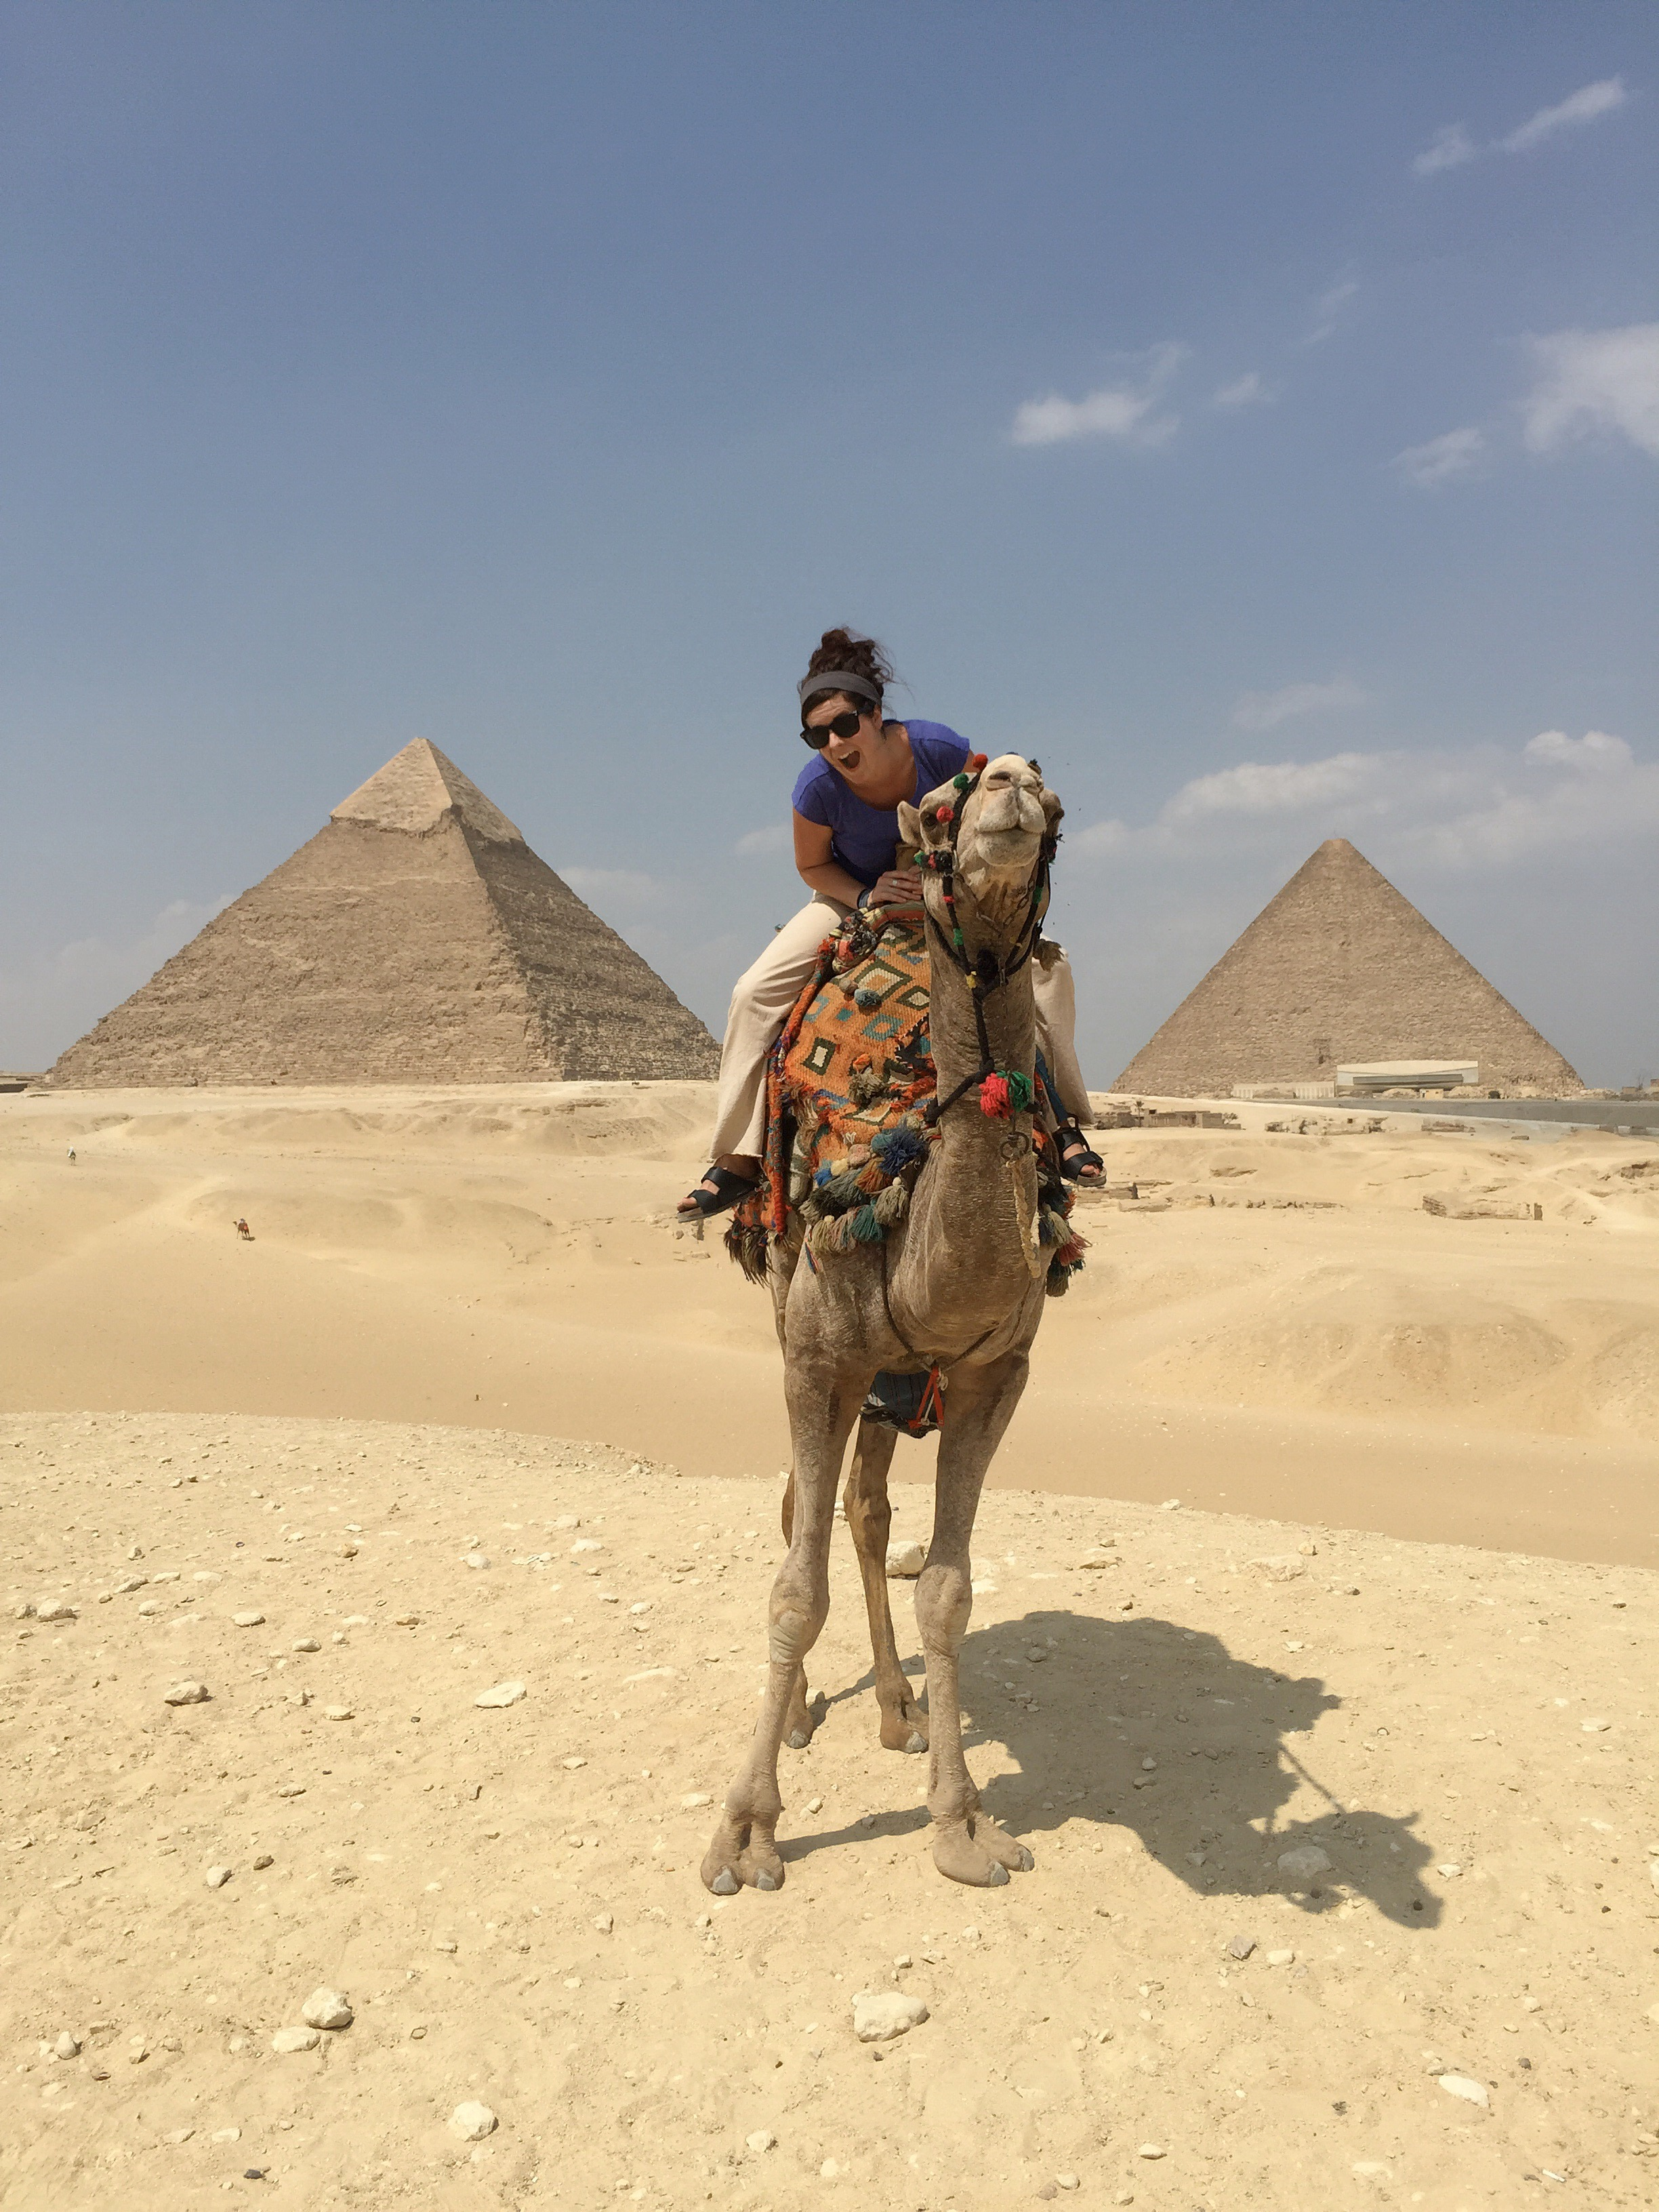 It's been a dream of mine since I was a kid to ride a camel around the Pyramids in Egypt. This fall I crossed it off my bucket list. If you ever get the chance to go to Egypt, TAKE IT! Better yet, make the chance. I can't wait to get back to the Middle East. It's welcoming, inspiring, delicious, and warm.